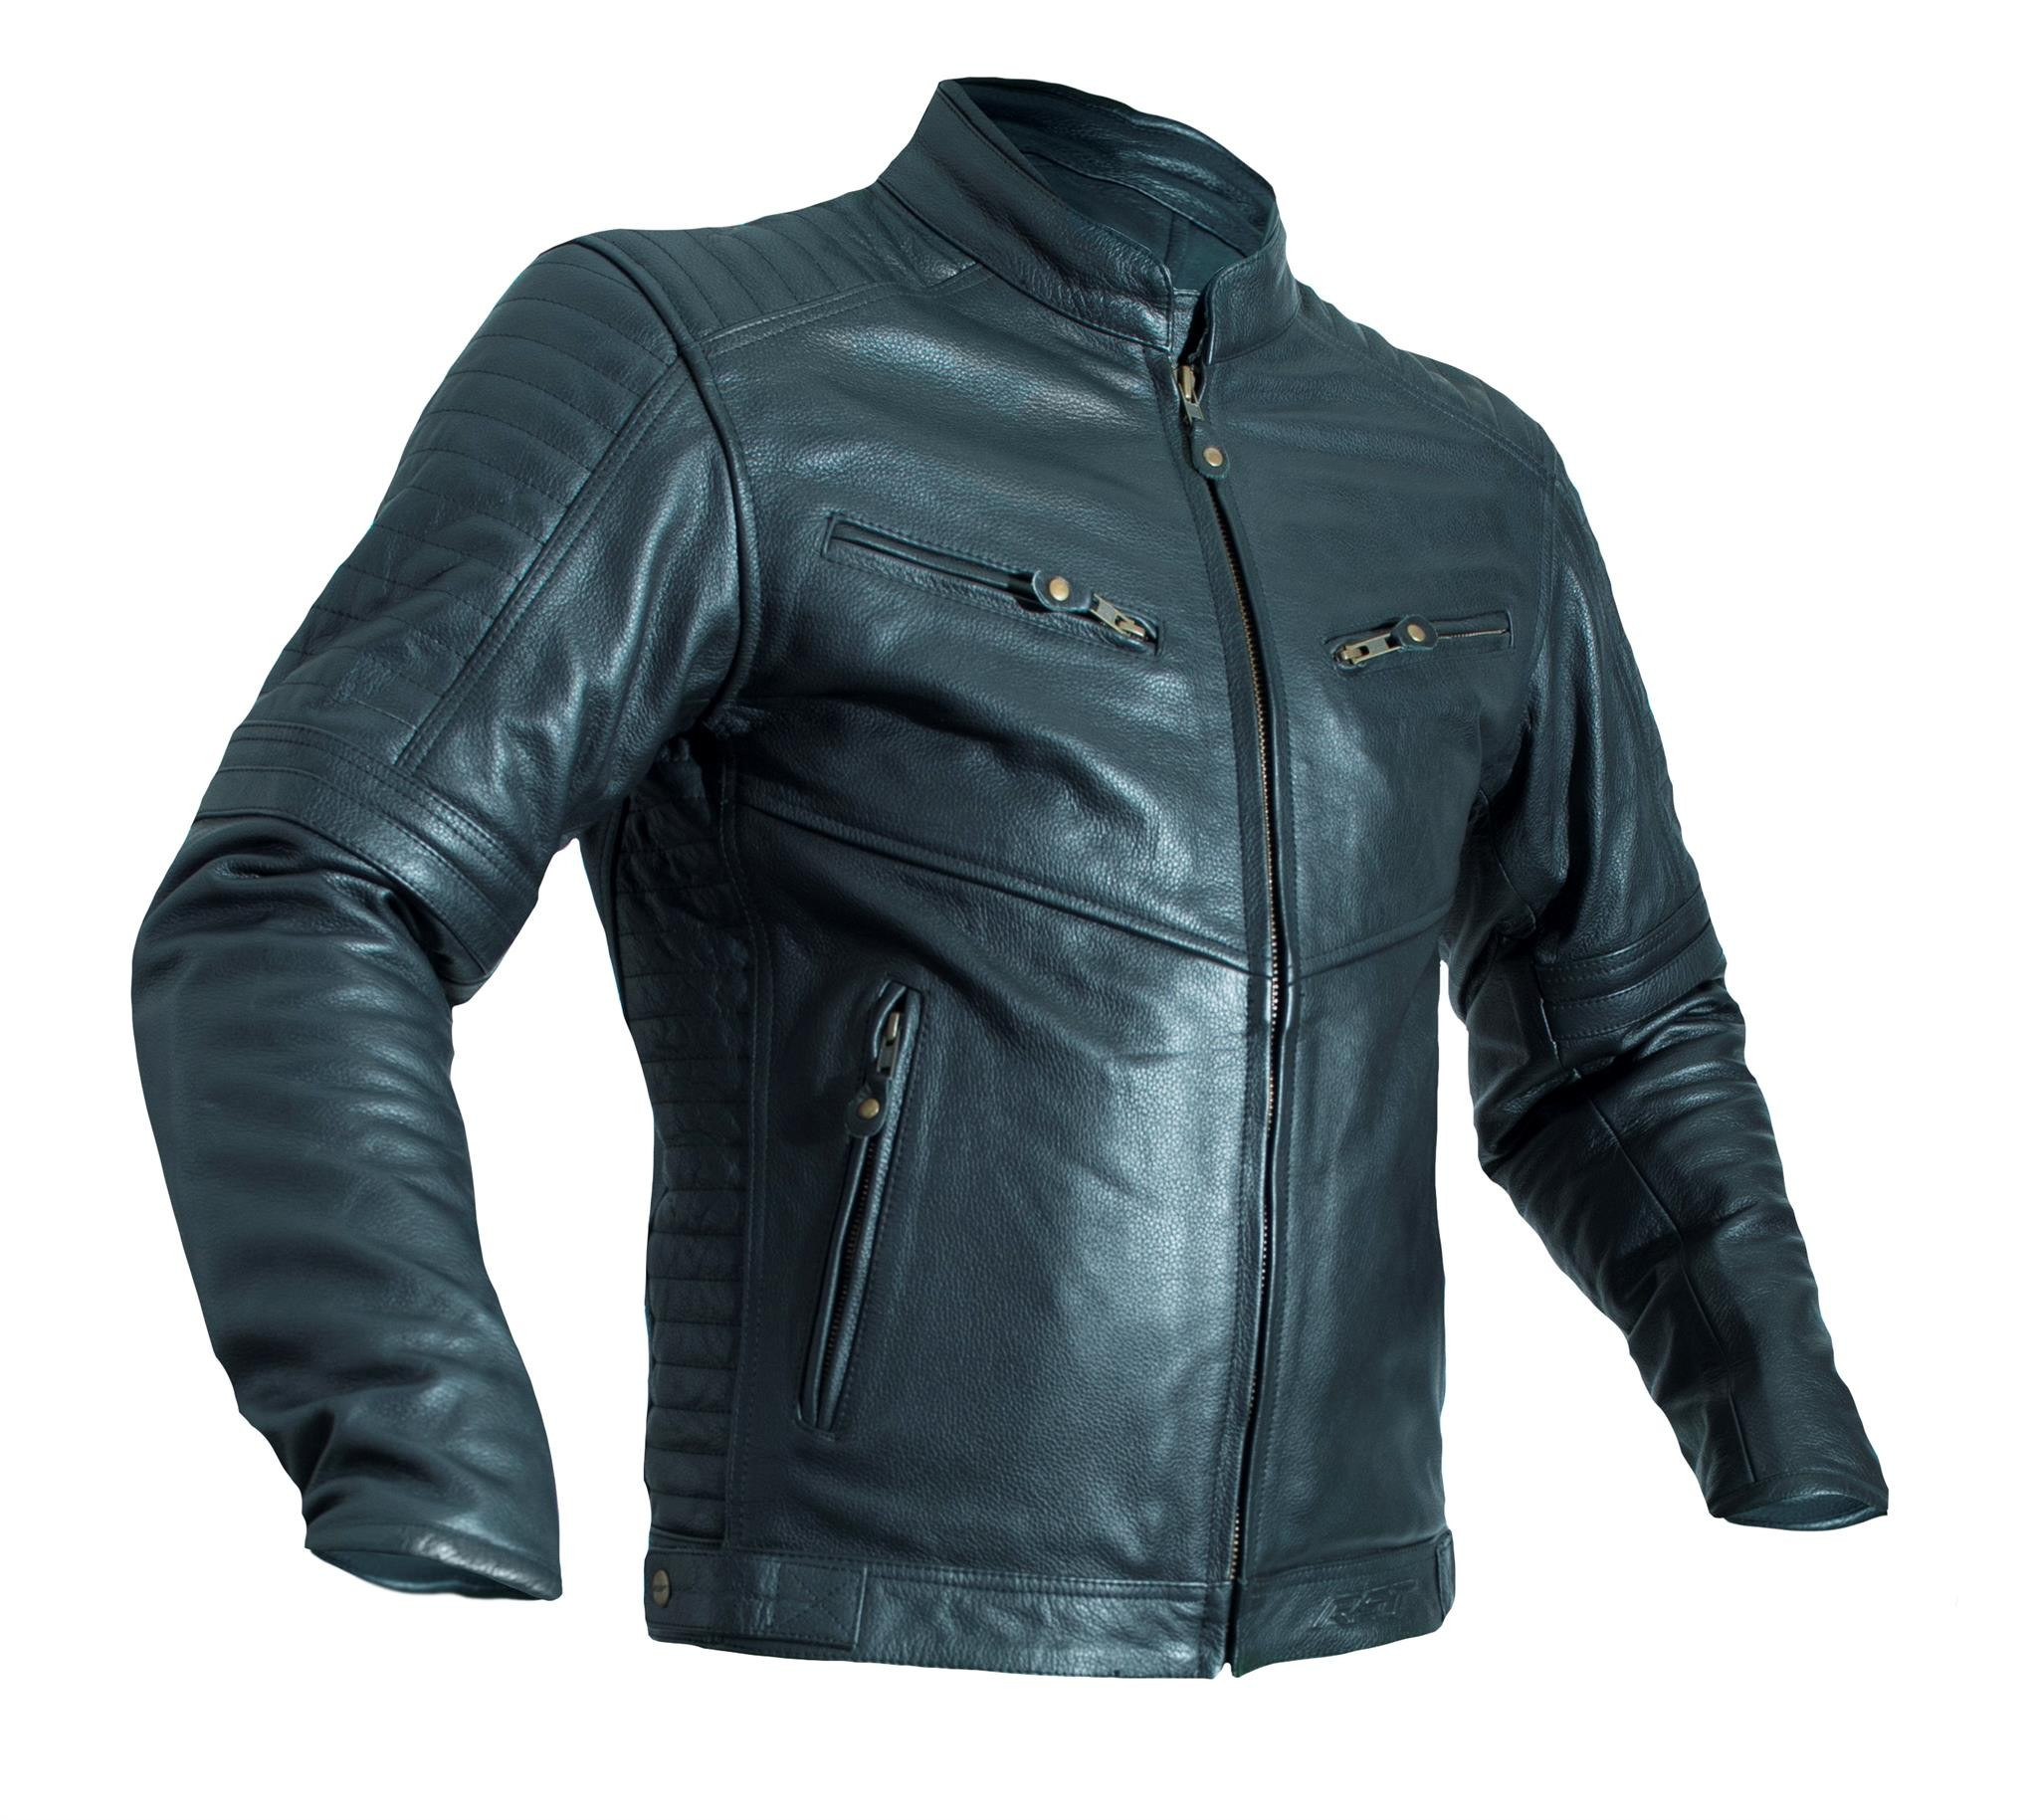 RST Interstate IV Leather Jacket